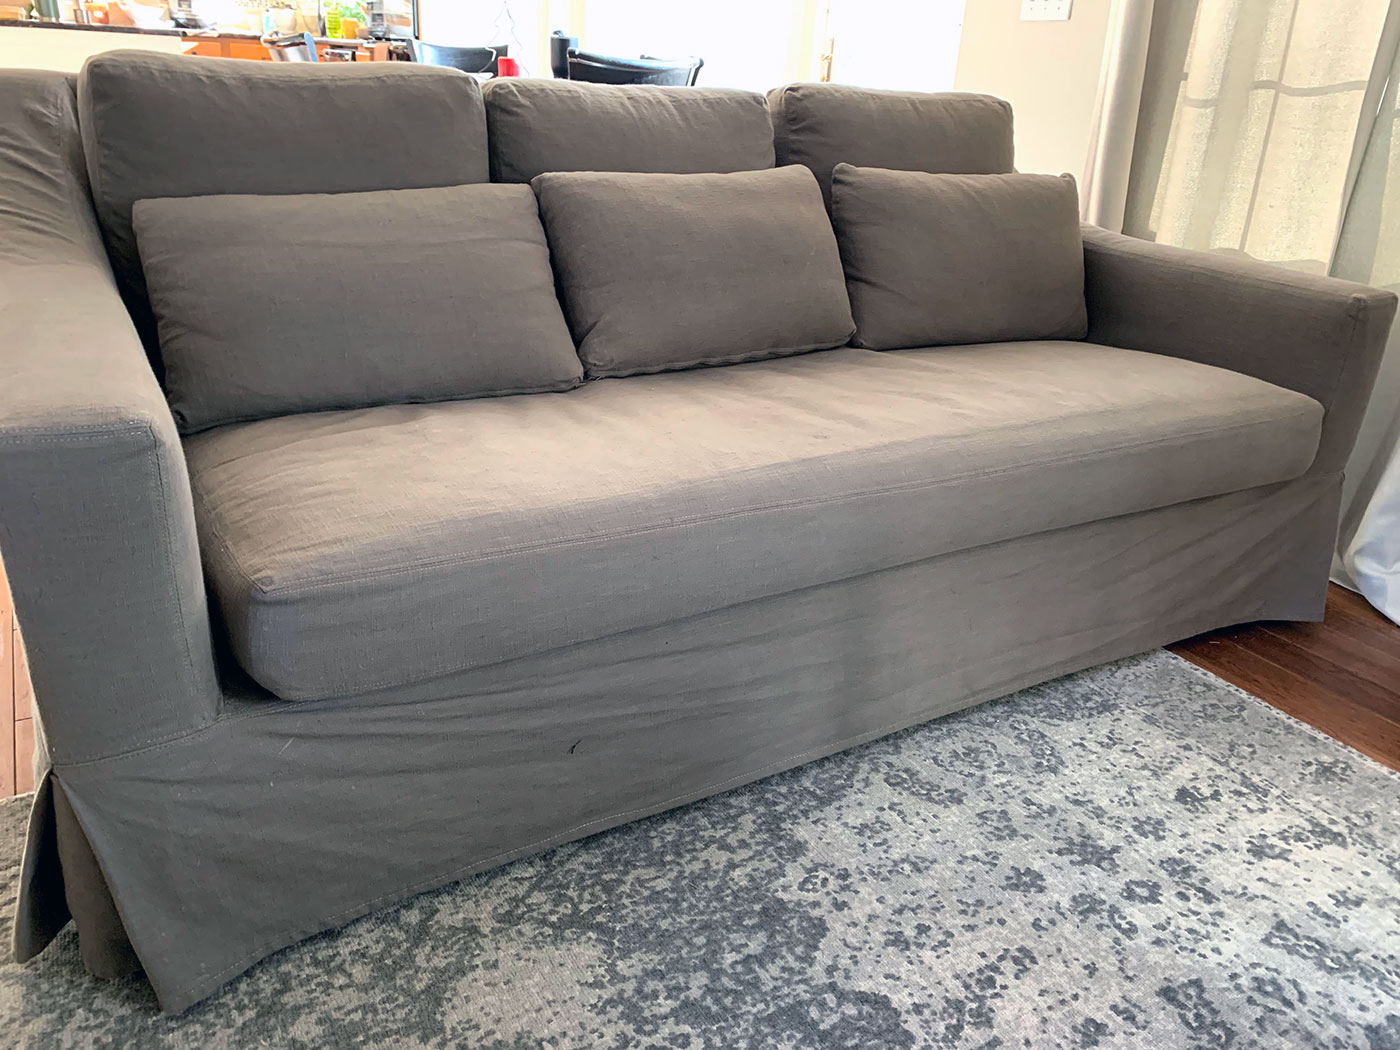 An Honest Review Of The Pottery Barn York Slope Arm Slipcovered Sofa